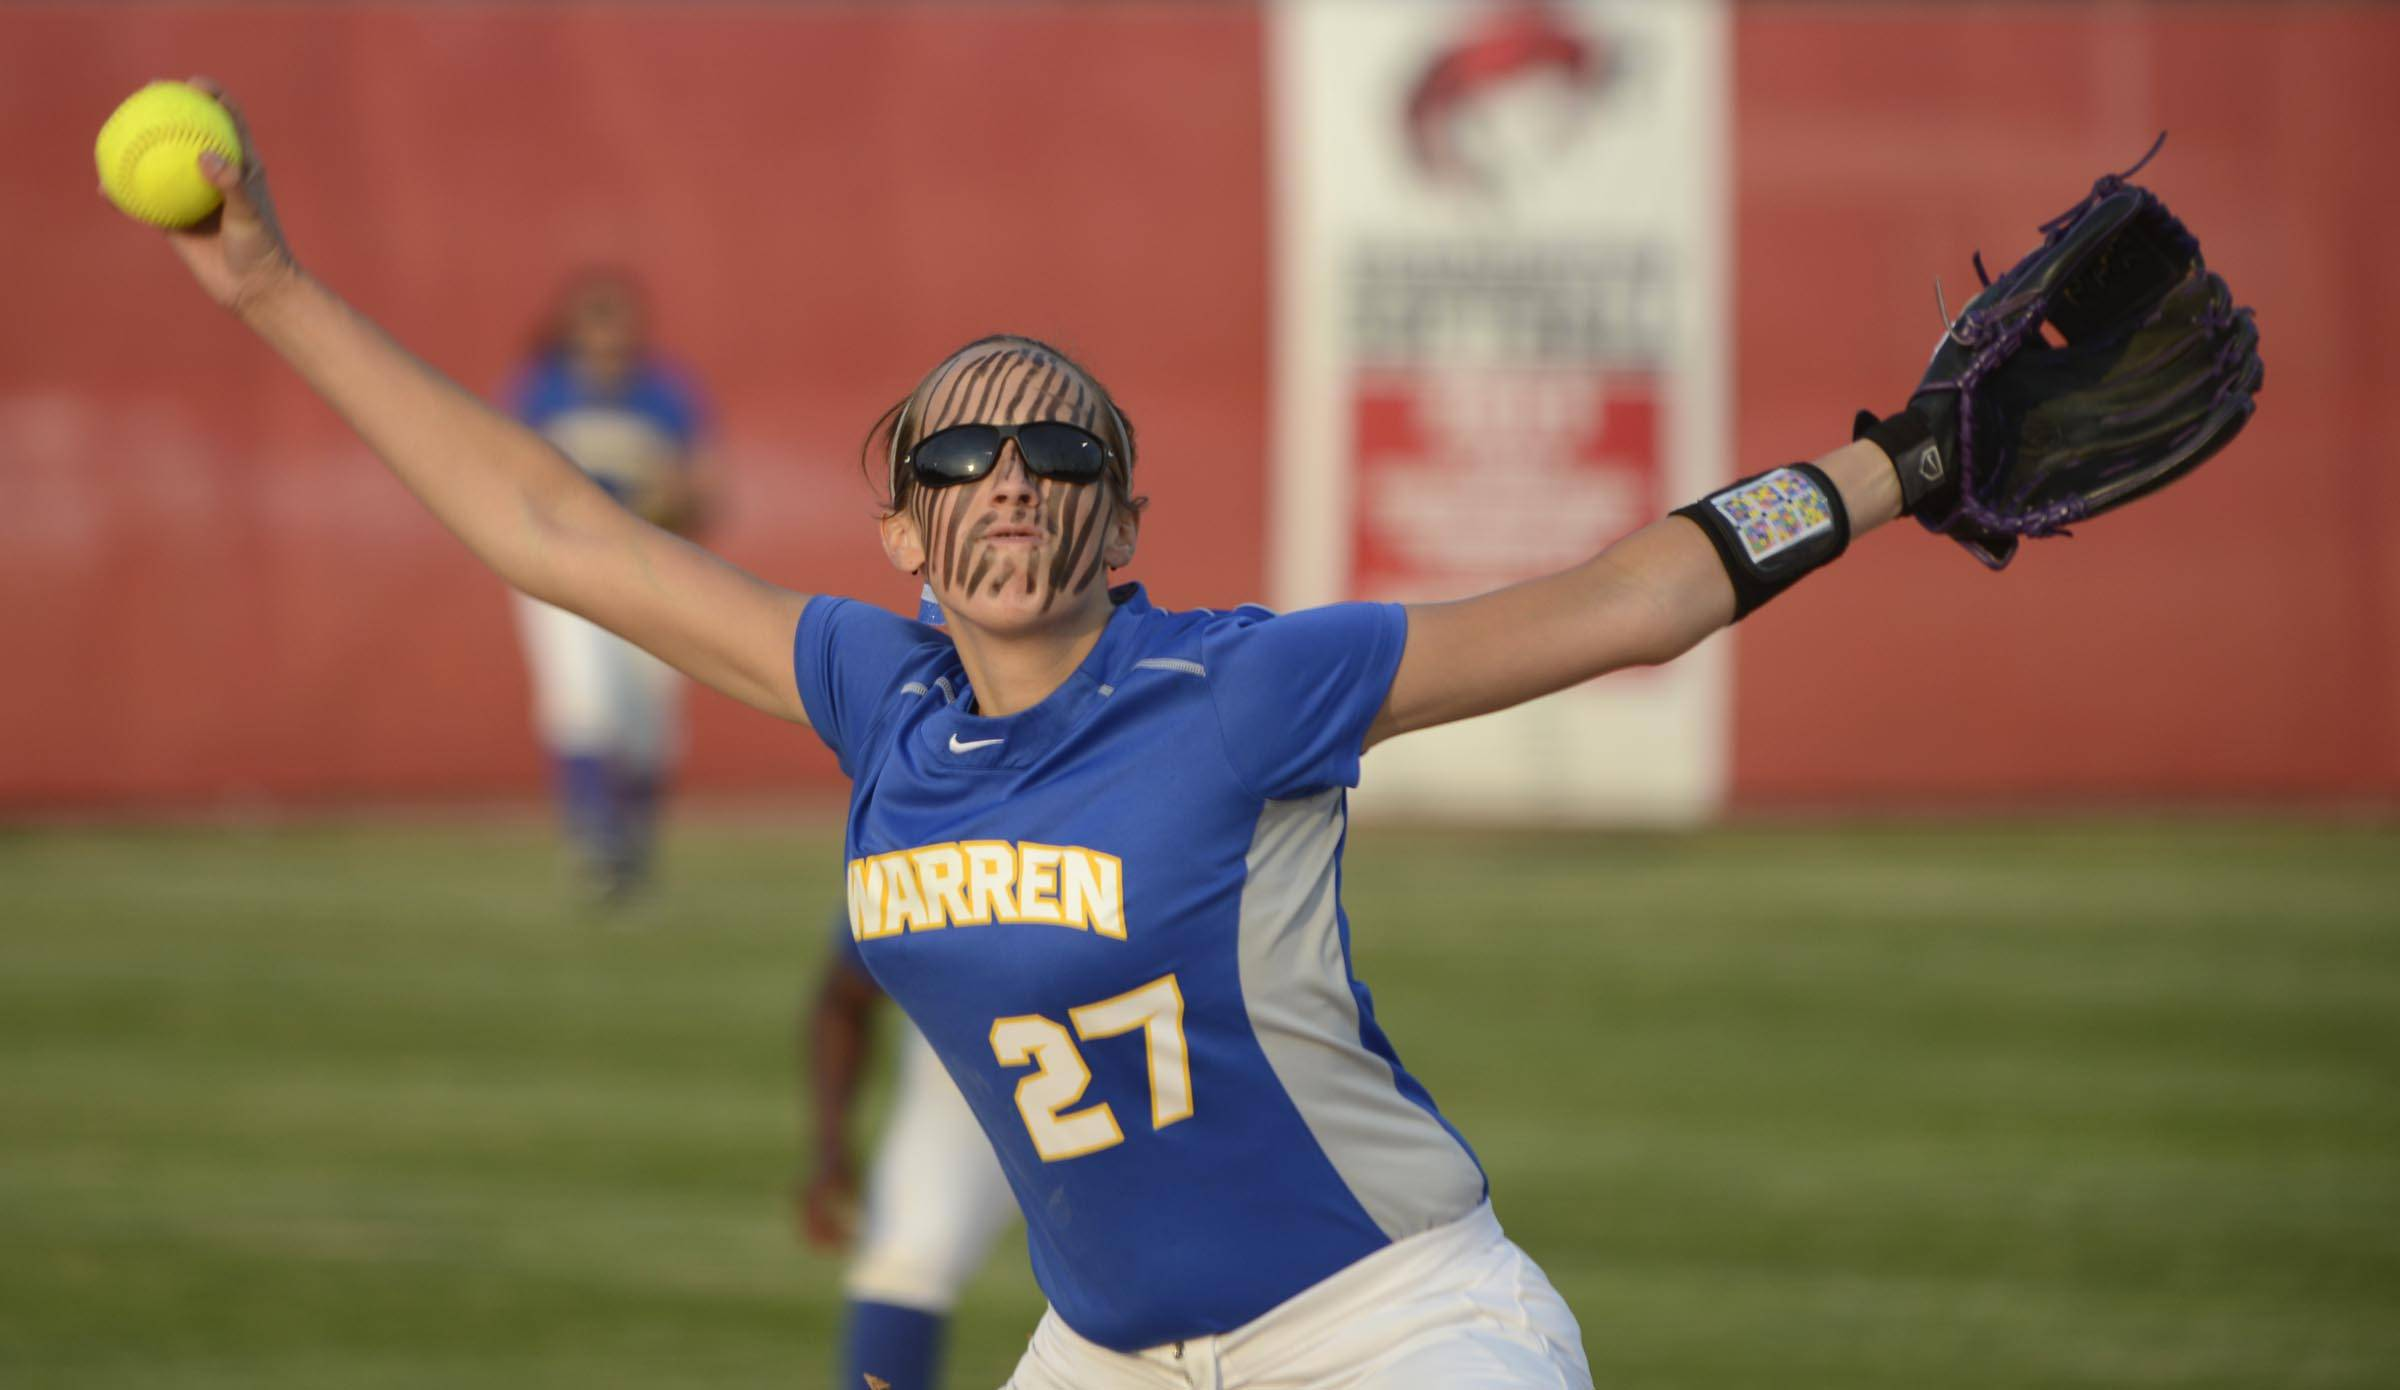 Warren's Jana Wagner delivers to the plate against Barrington in the Class 4A Barrington supersectional Monday.